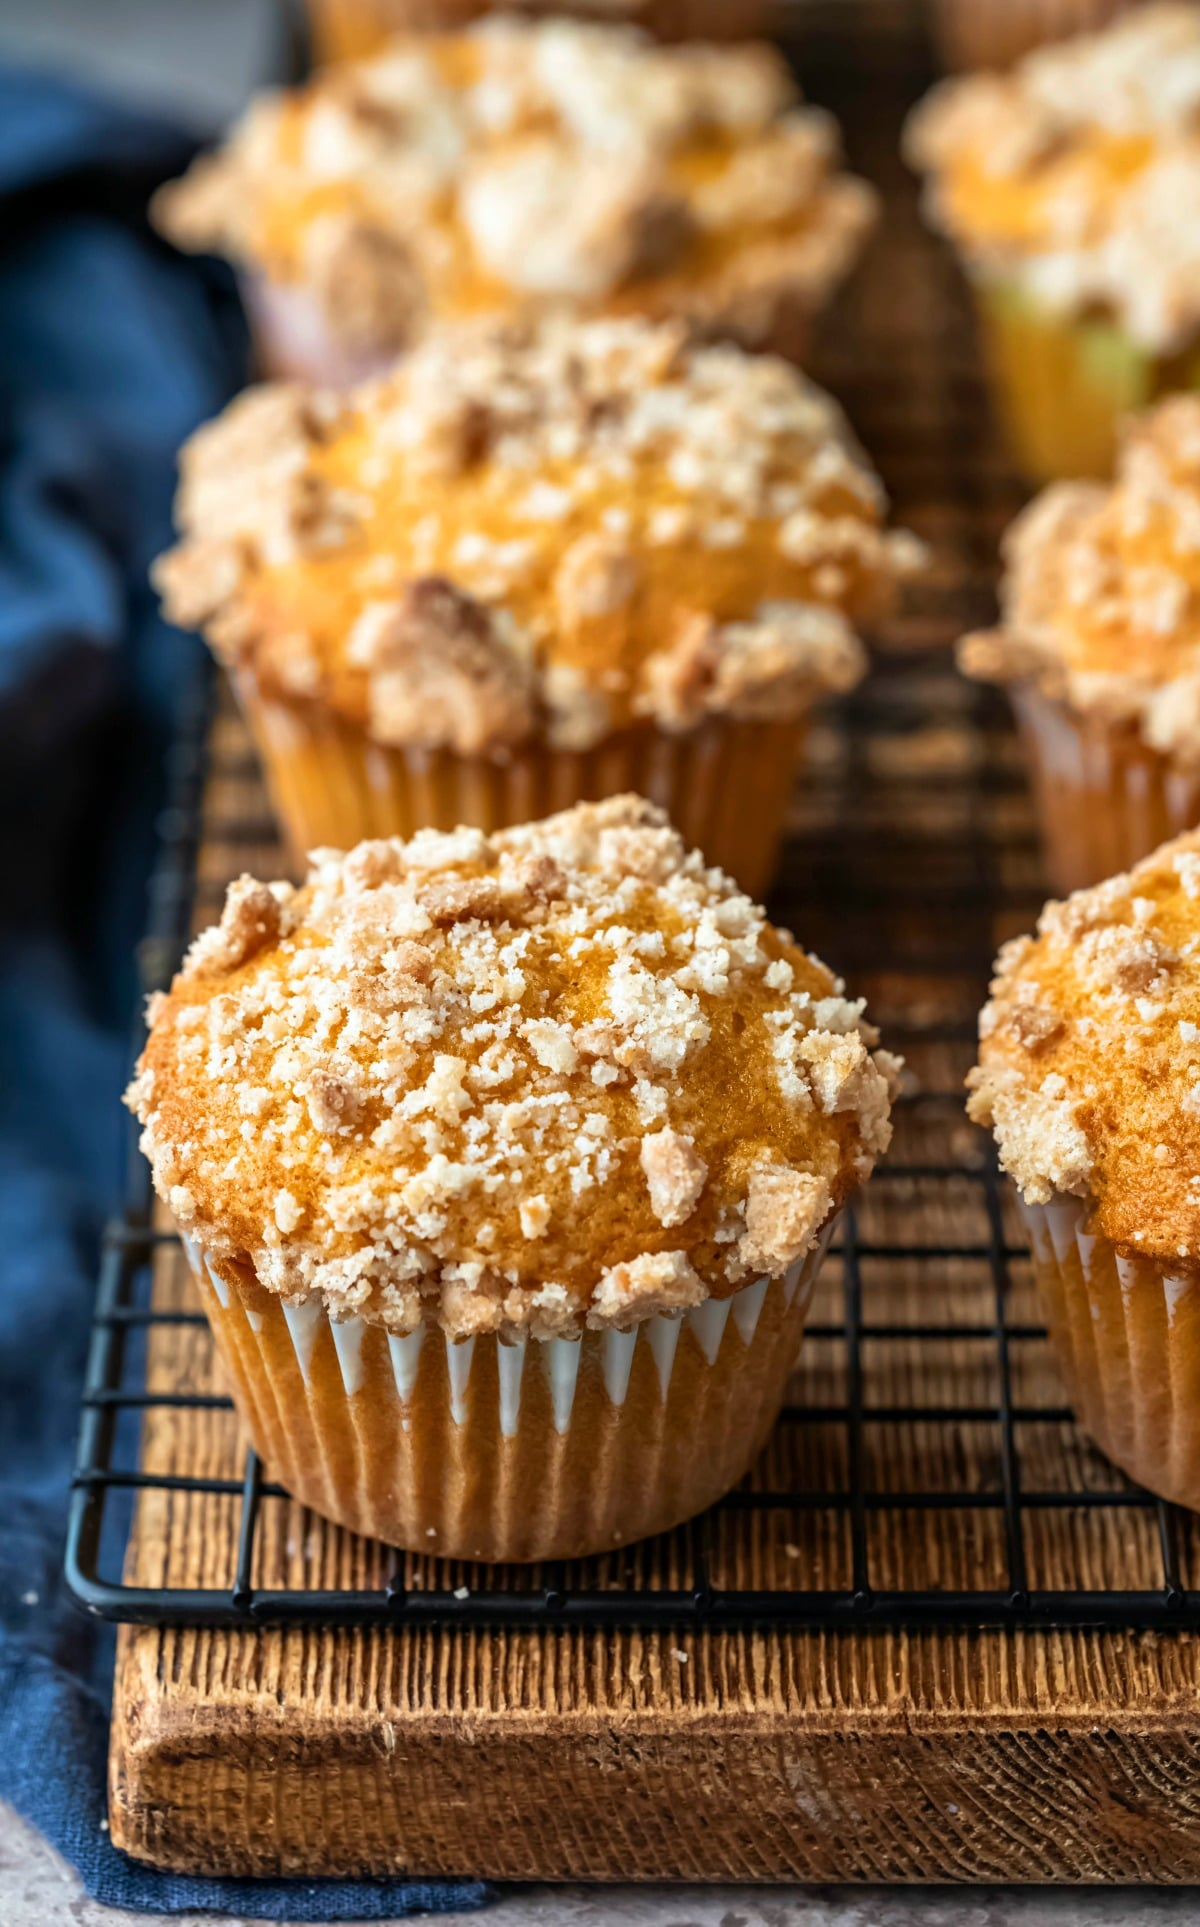 Row of pumpkin streusel muffins on a wooden cutting board